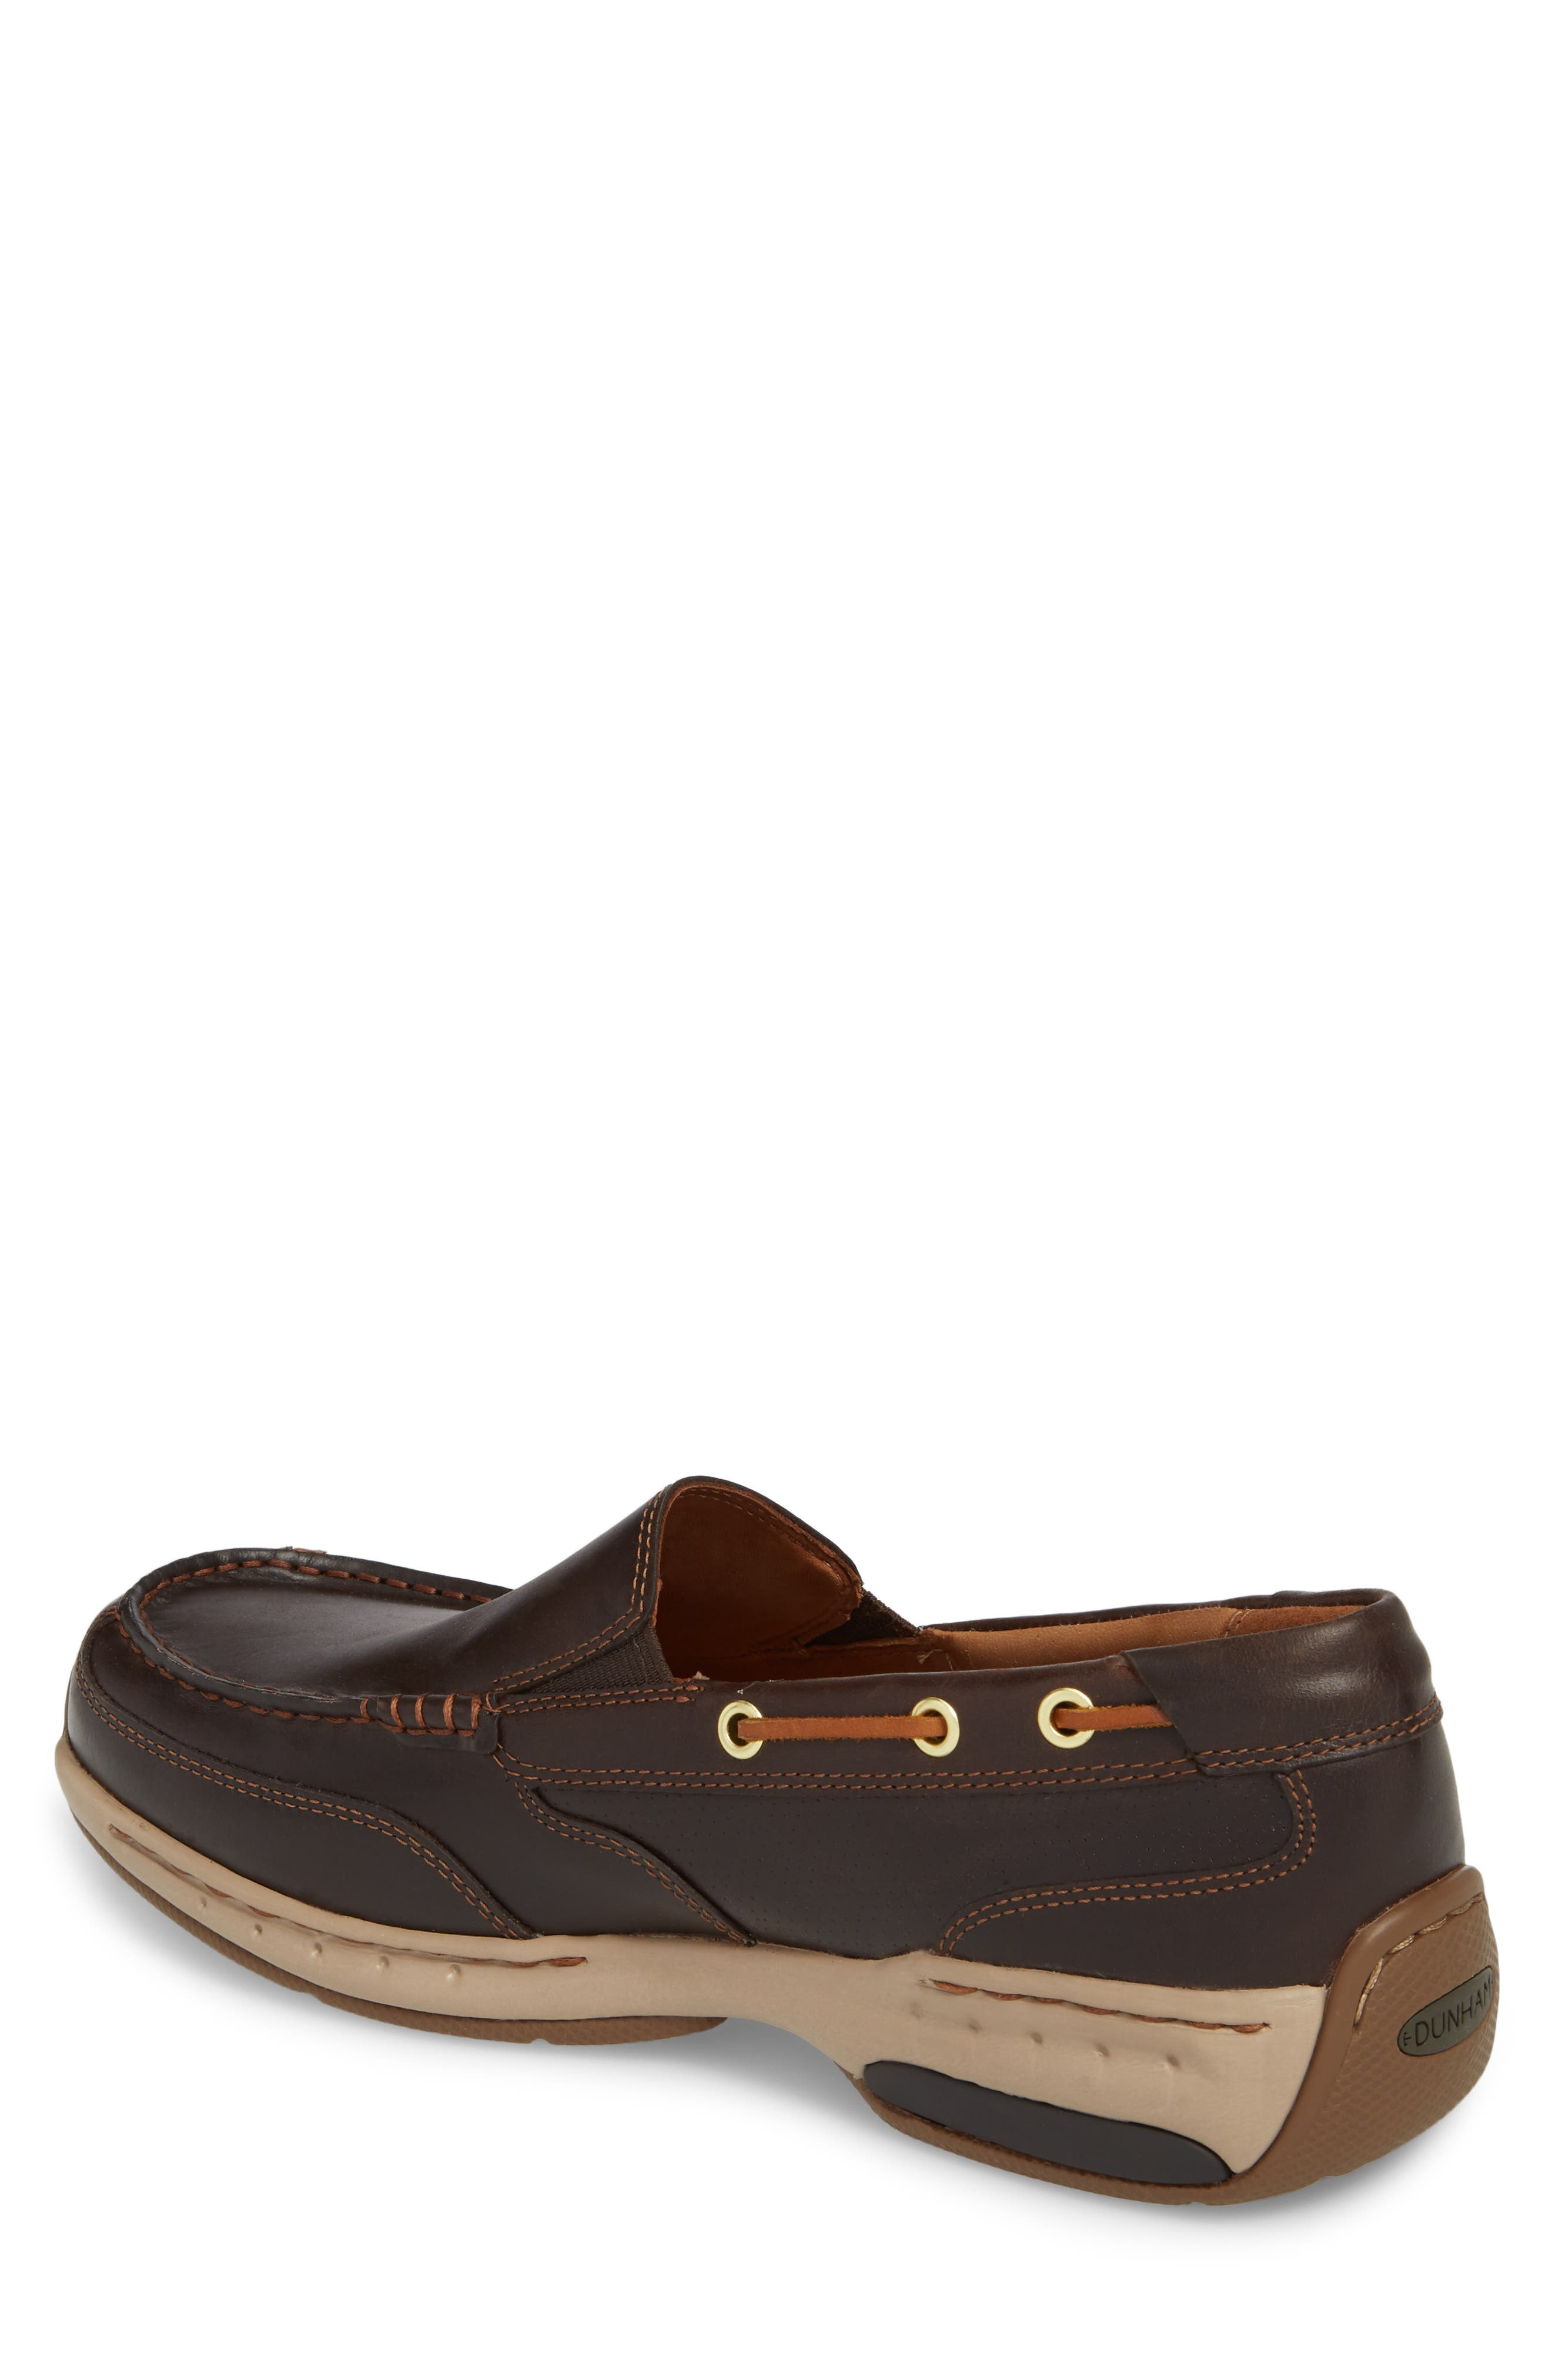 Waterford Water Resistant Slip-On,                             Alternate thumbnail 2, color,                             Tan Leather